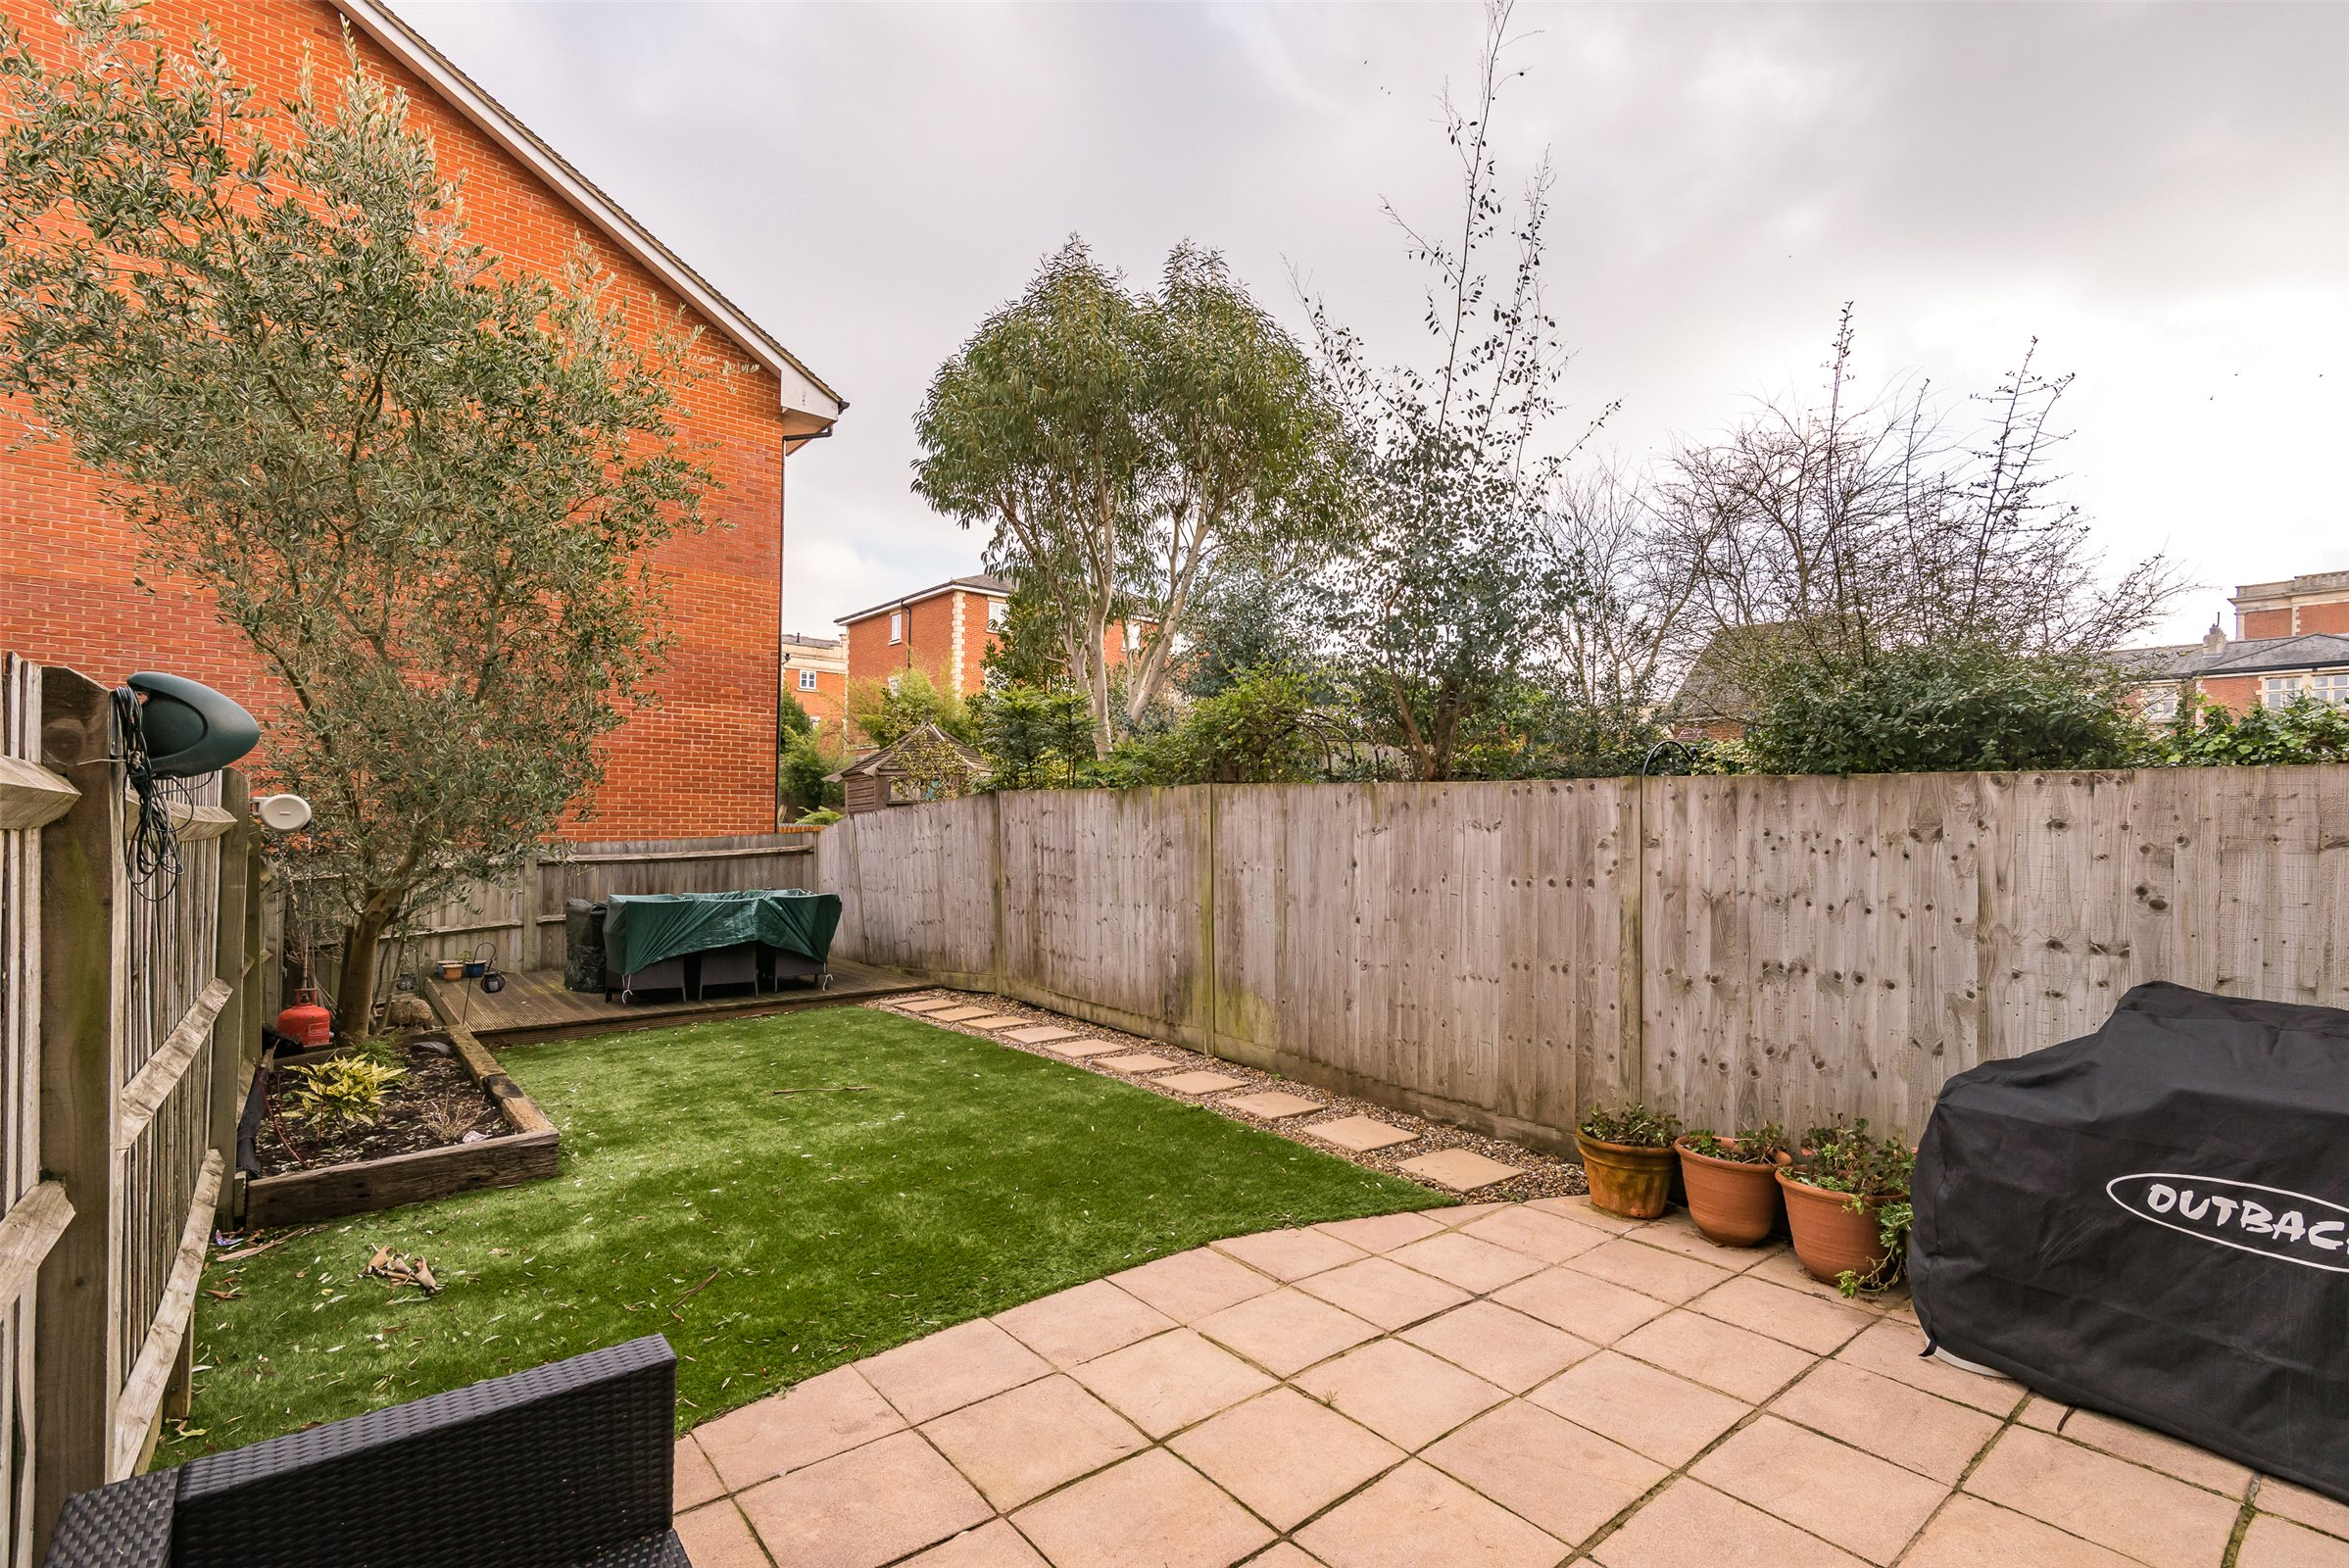 3 Bedrooms Terraced House for sale in Royal Earlswood Park, Redhill, Surrey, RH1